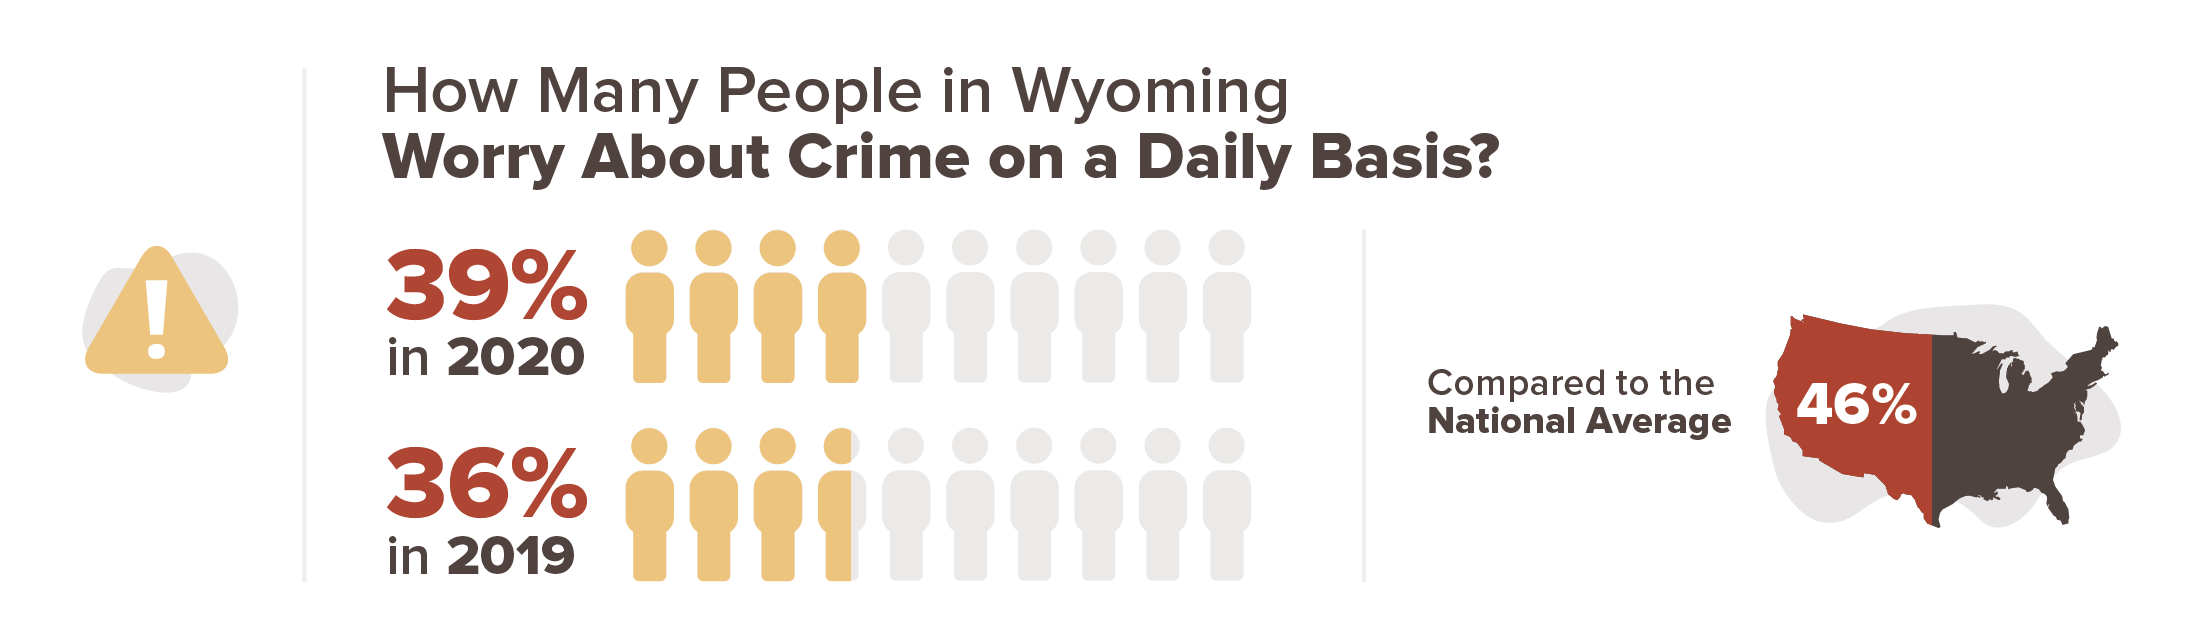 graphic with percent of people who worry about crime in Wyoming